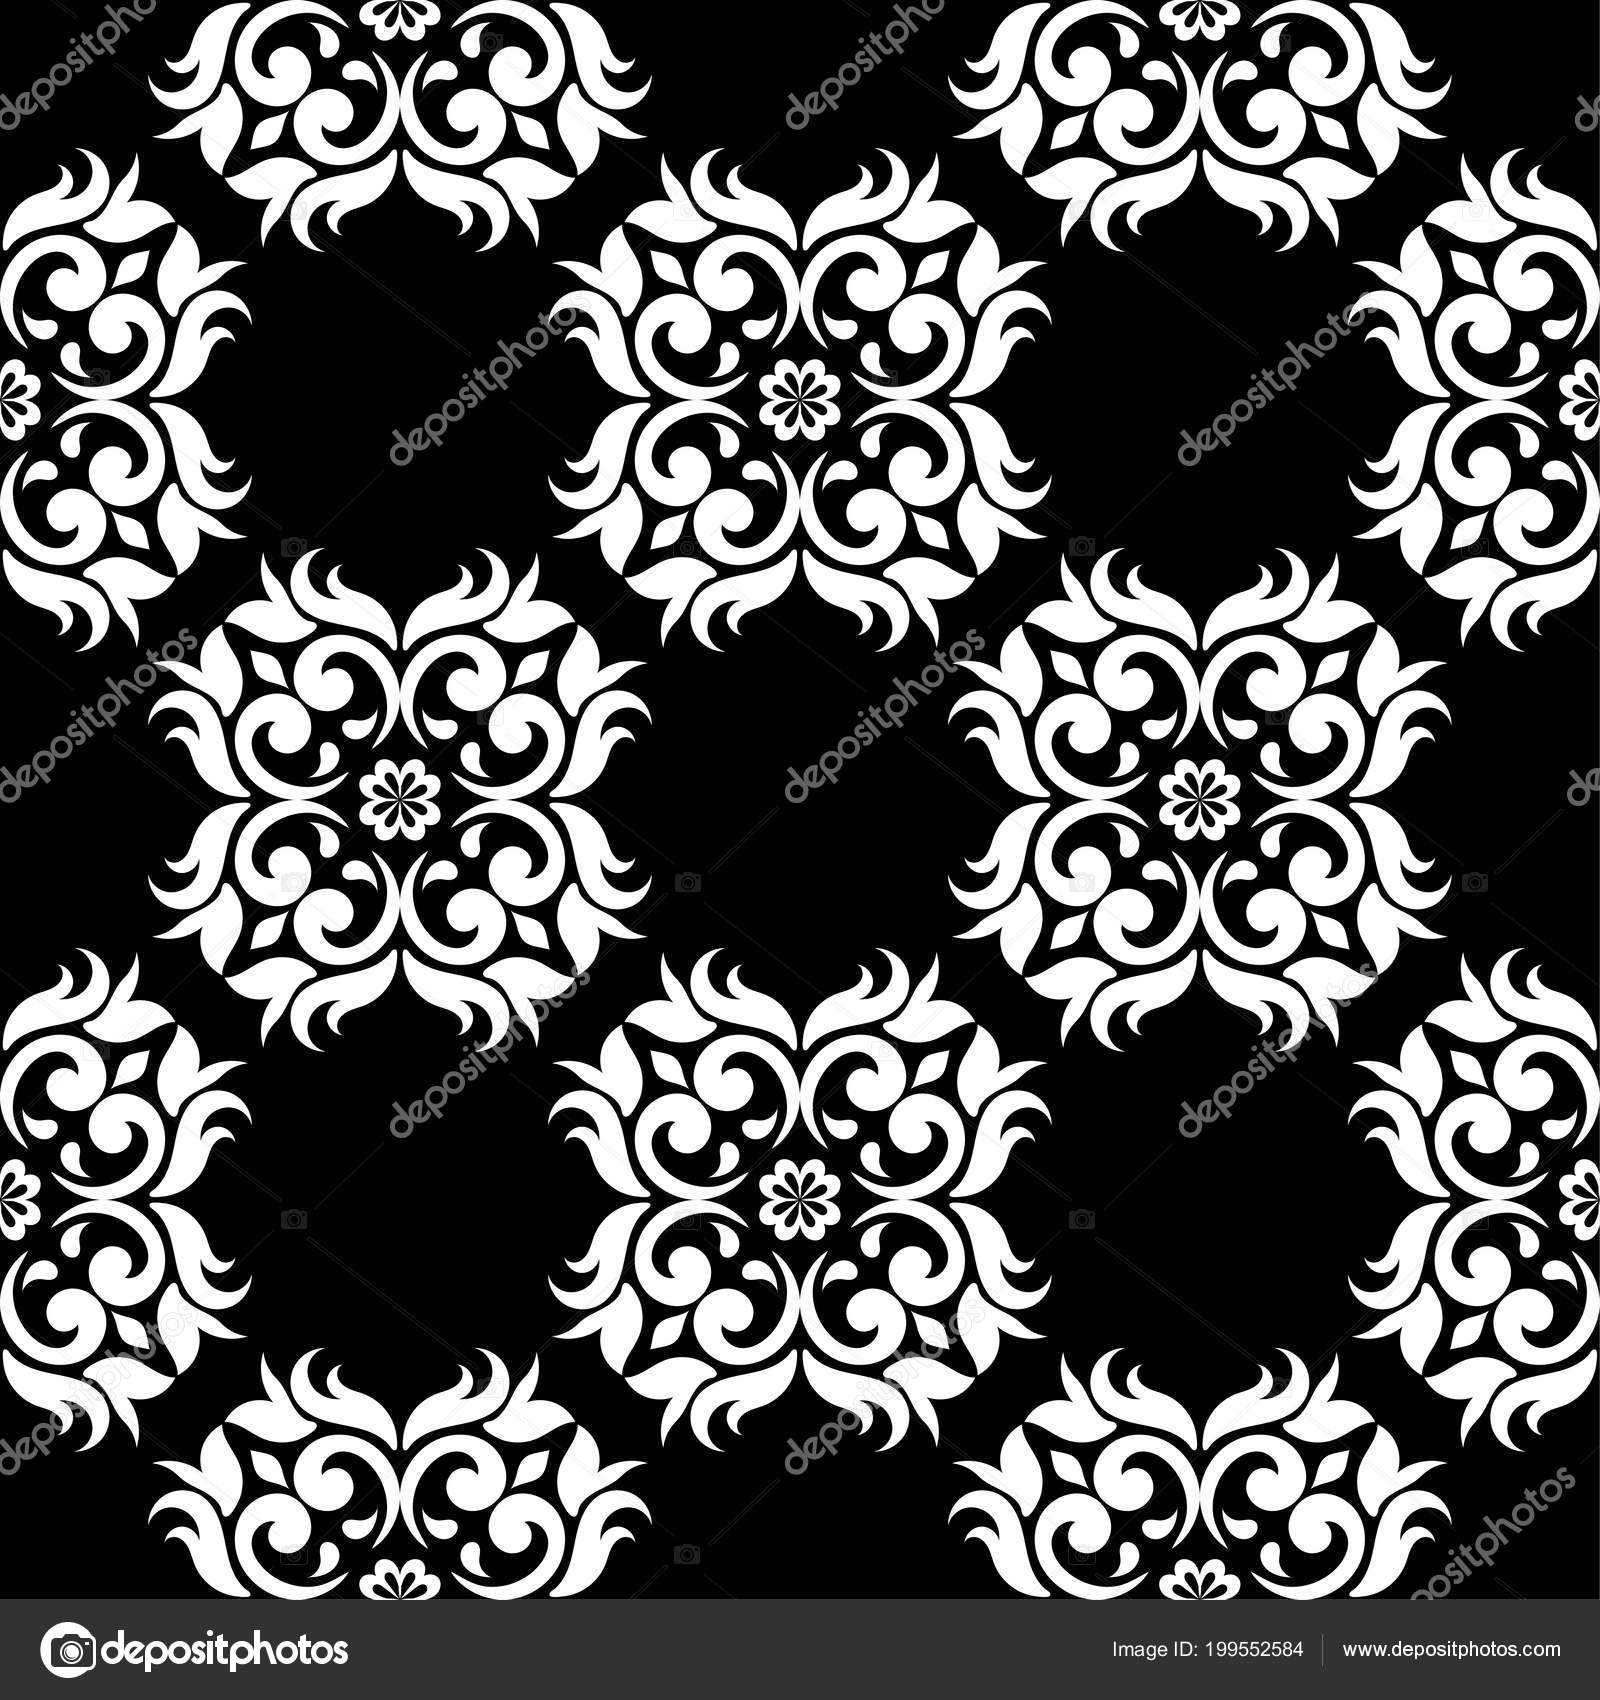 Black And White Floral Ornament Seamless Pattern For Textile And